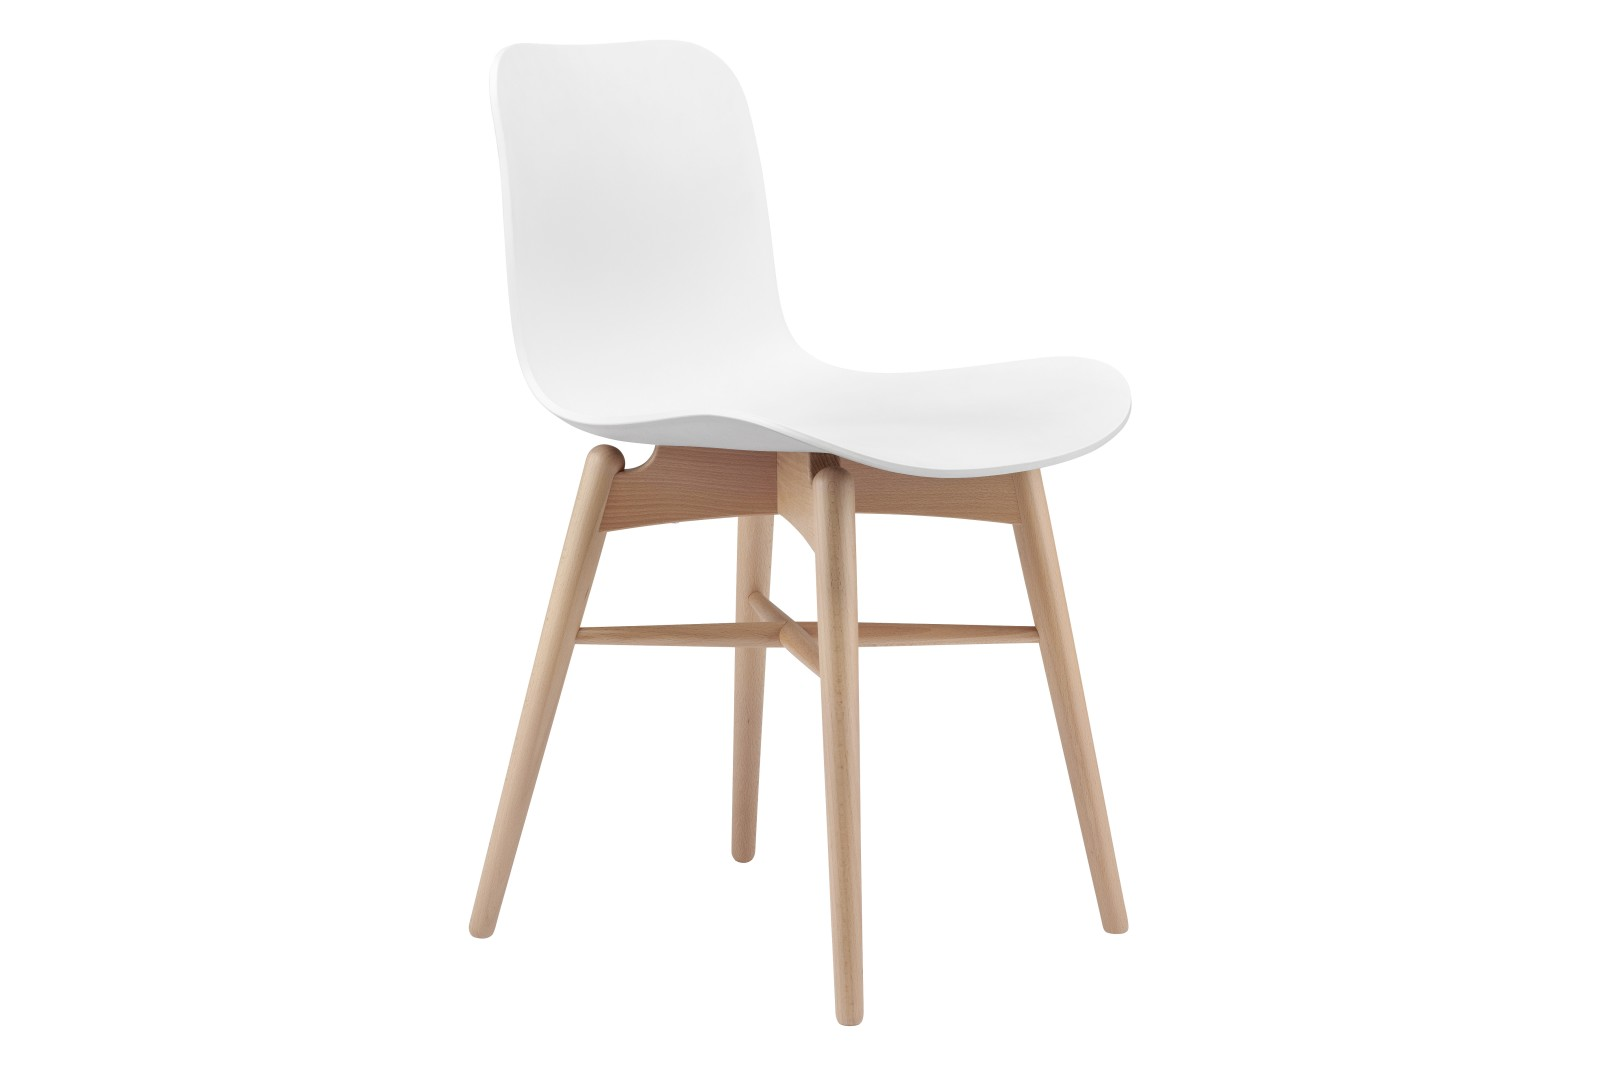 Langue Original Dining Chair Beech Natural Frame, Plastic Off White Shell